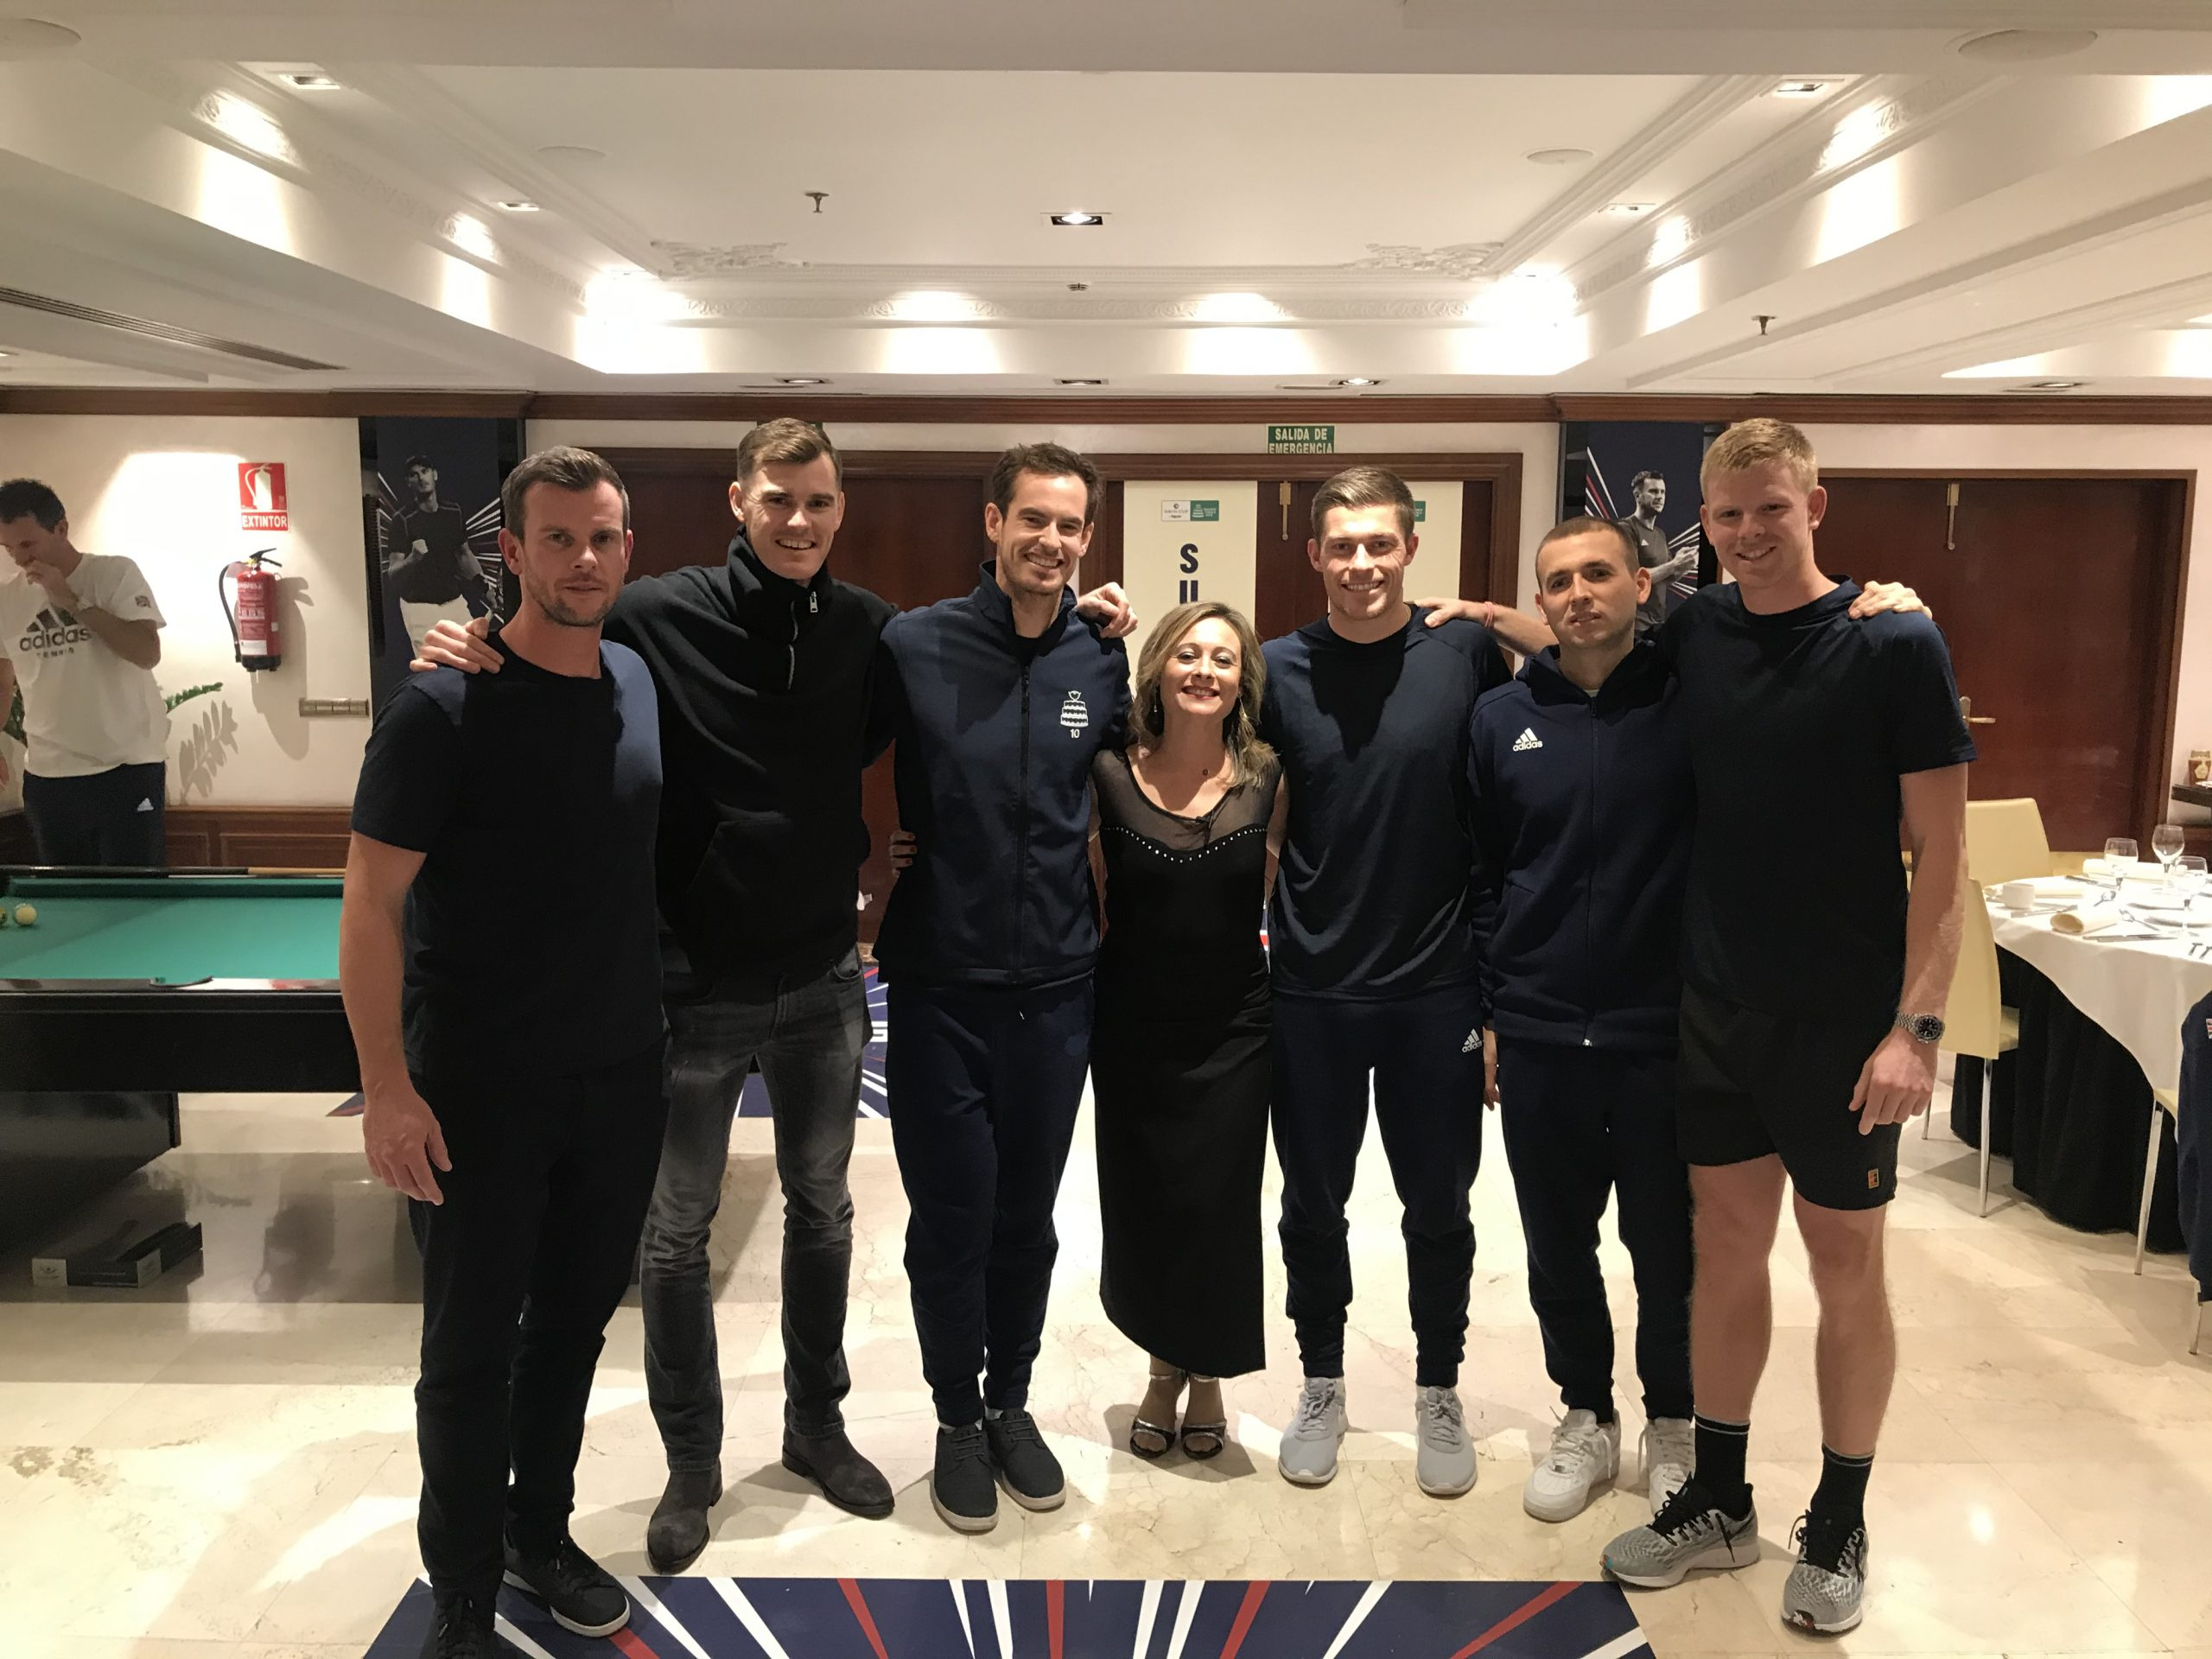 WATCH | Andy Murray and GB Davis Cup team take on the Strictly dancing challenge